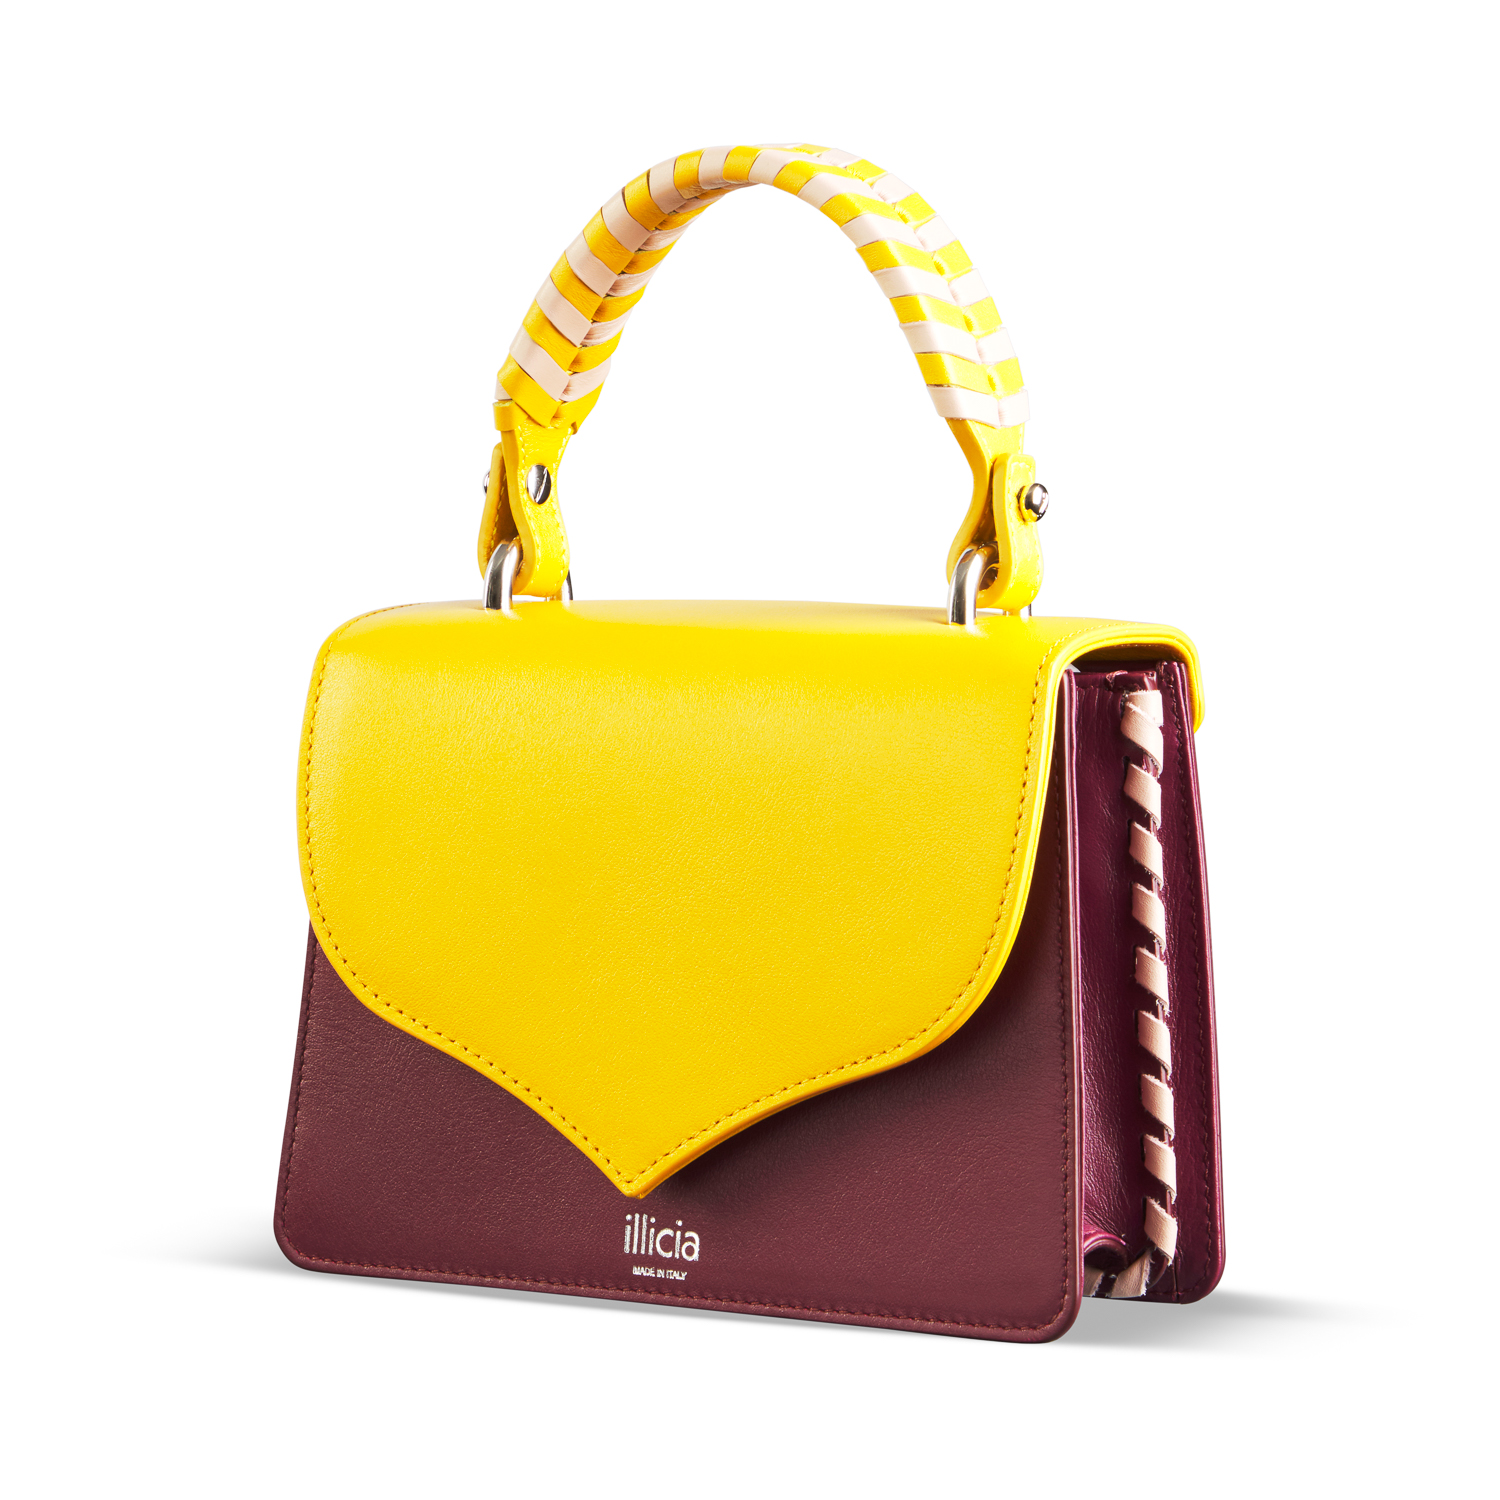 Celina 2.0 Yellow And Oxblood Red Bag